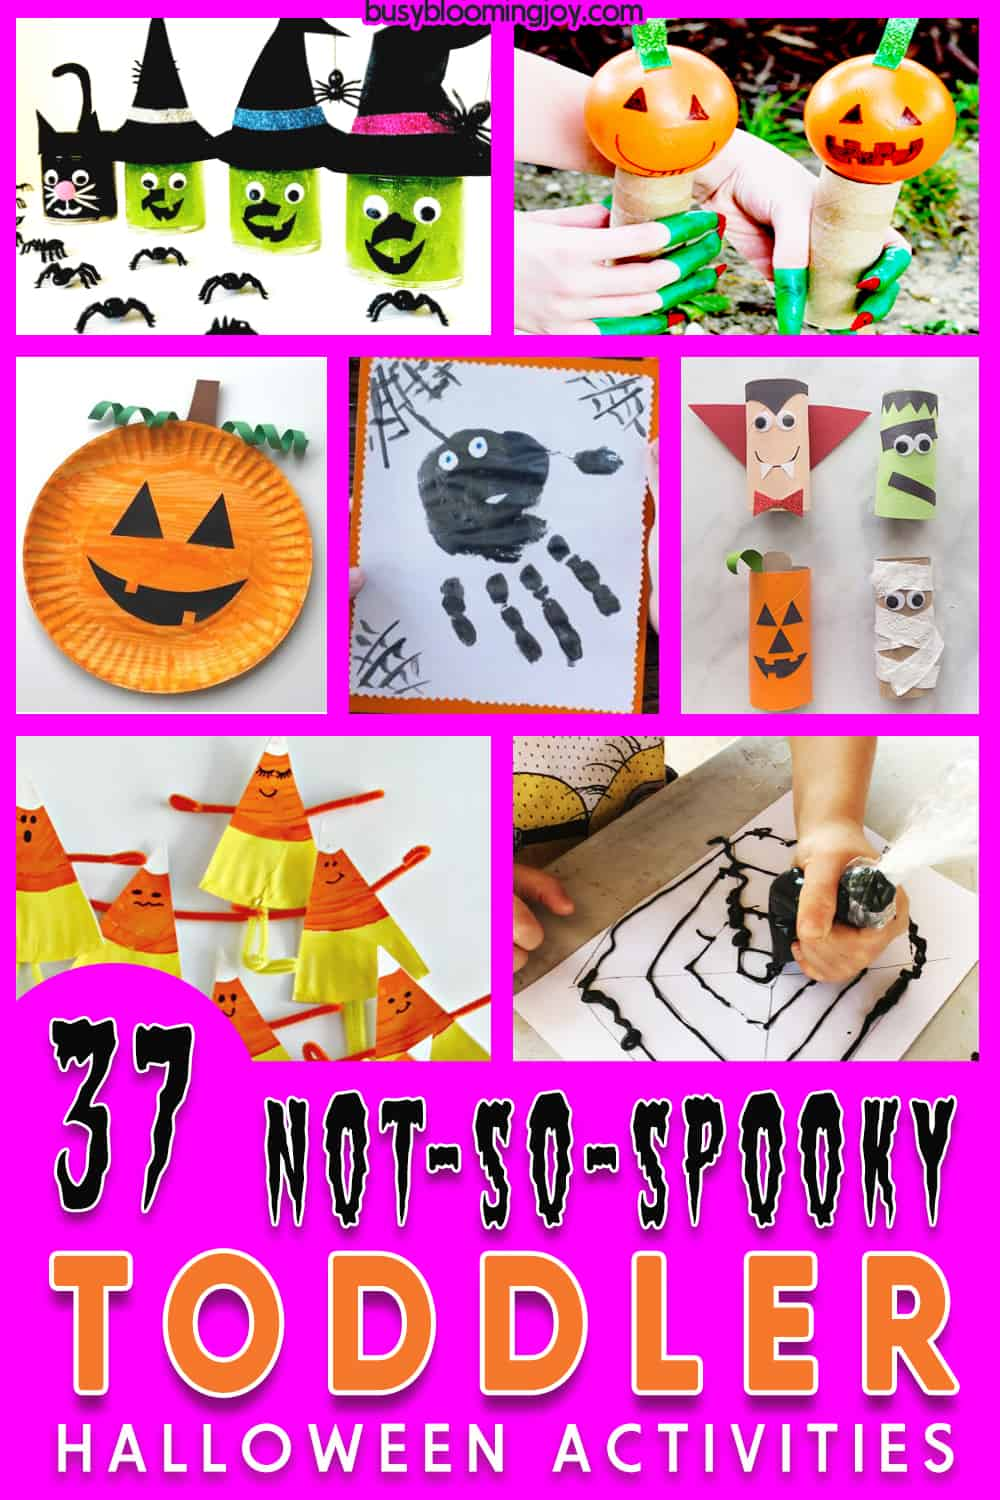 Halloween crafts and activities for toddlers and young kids